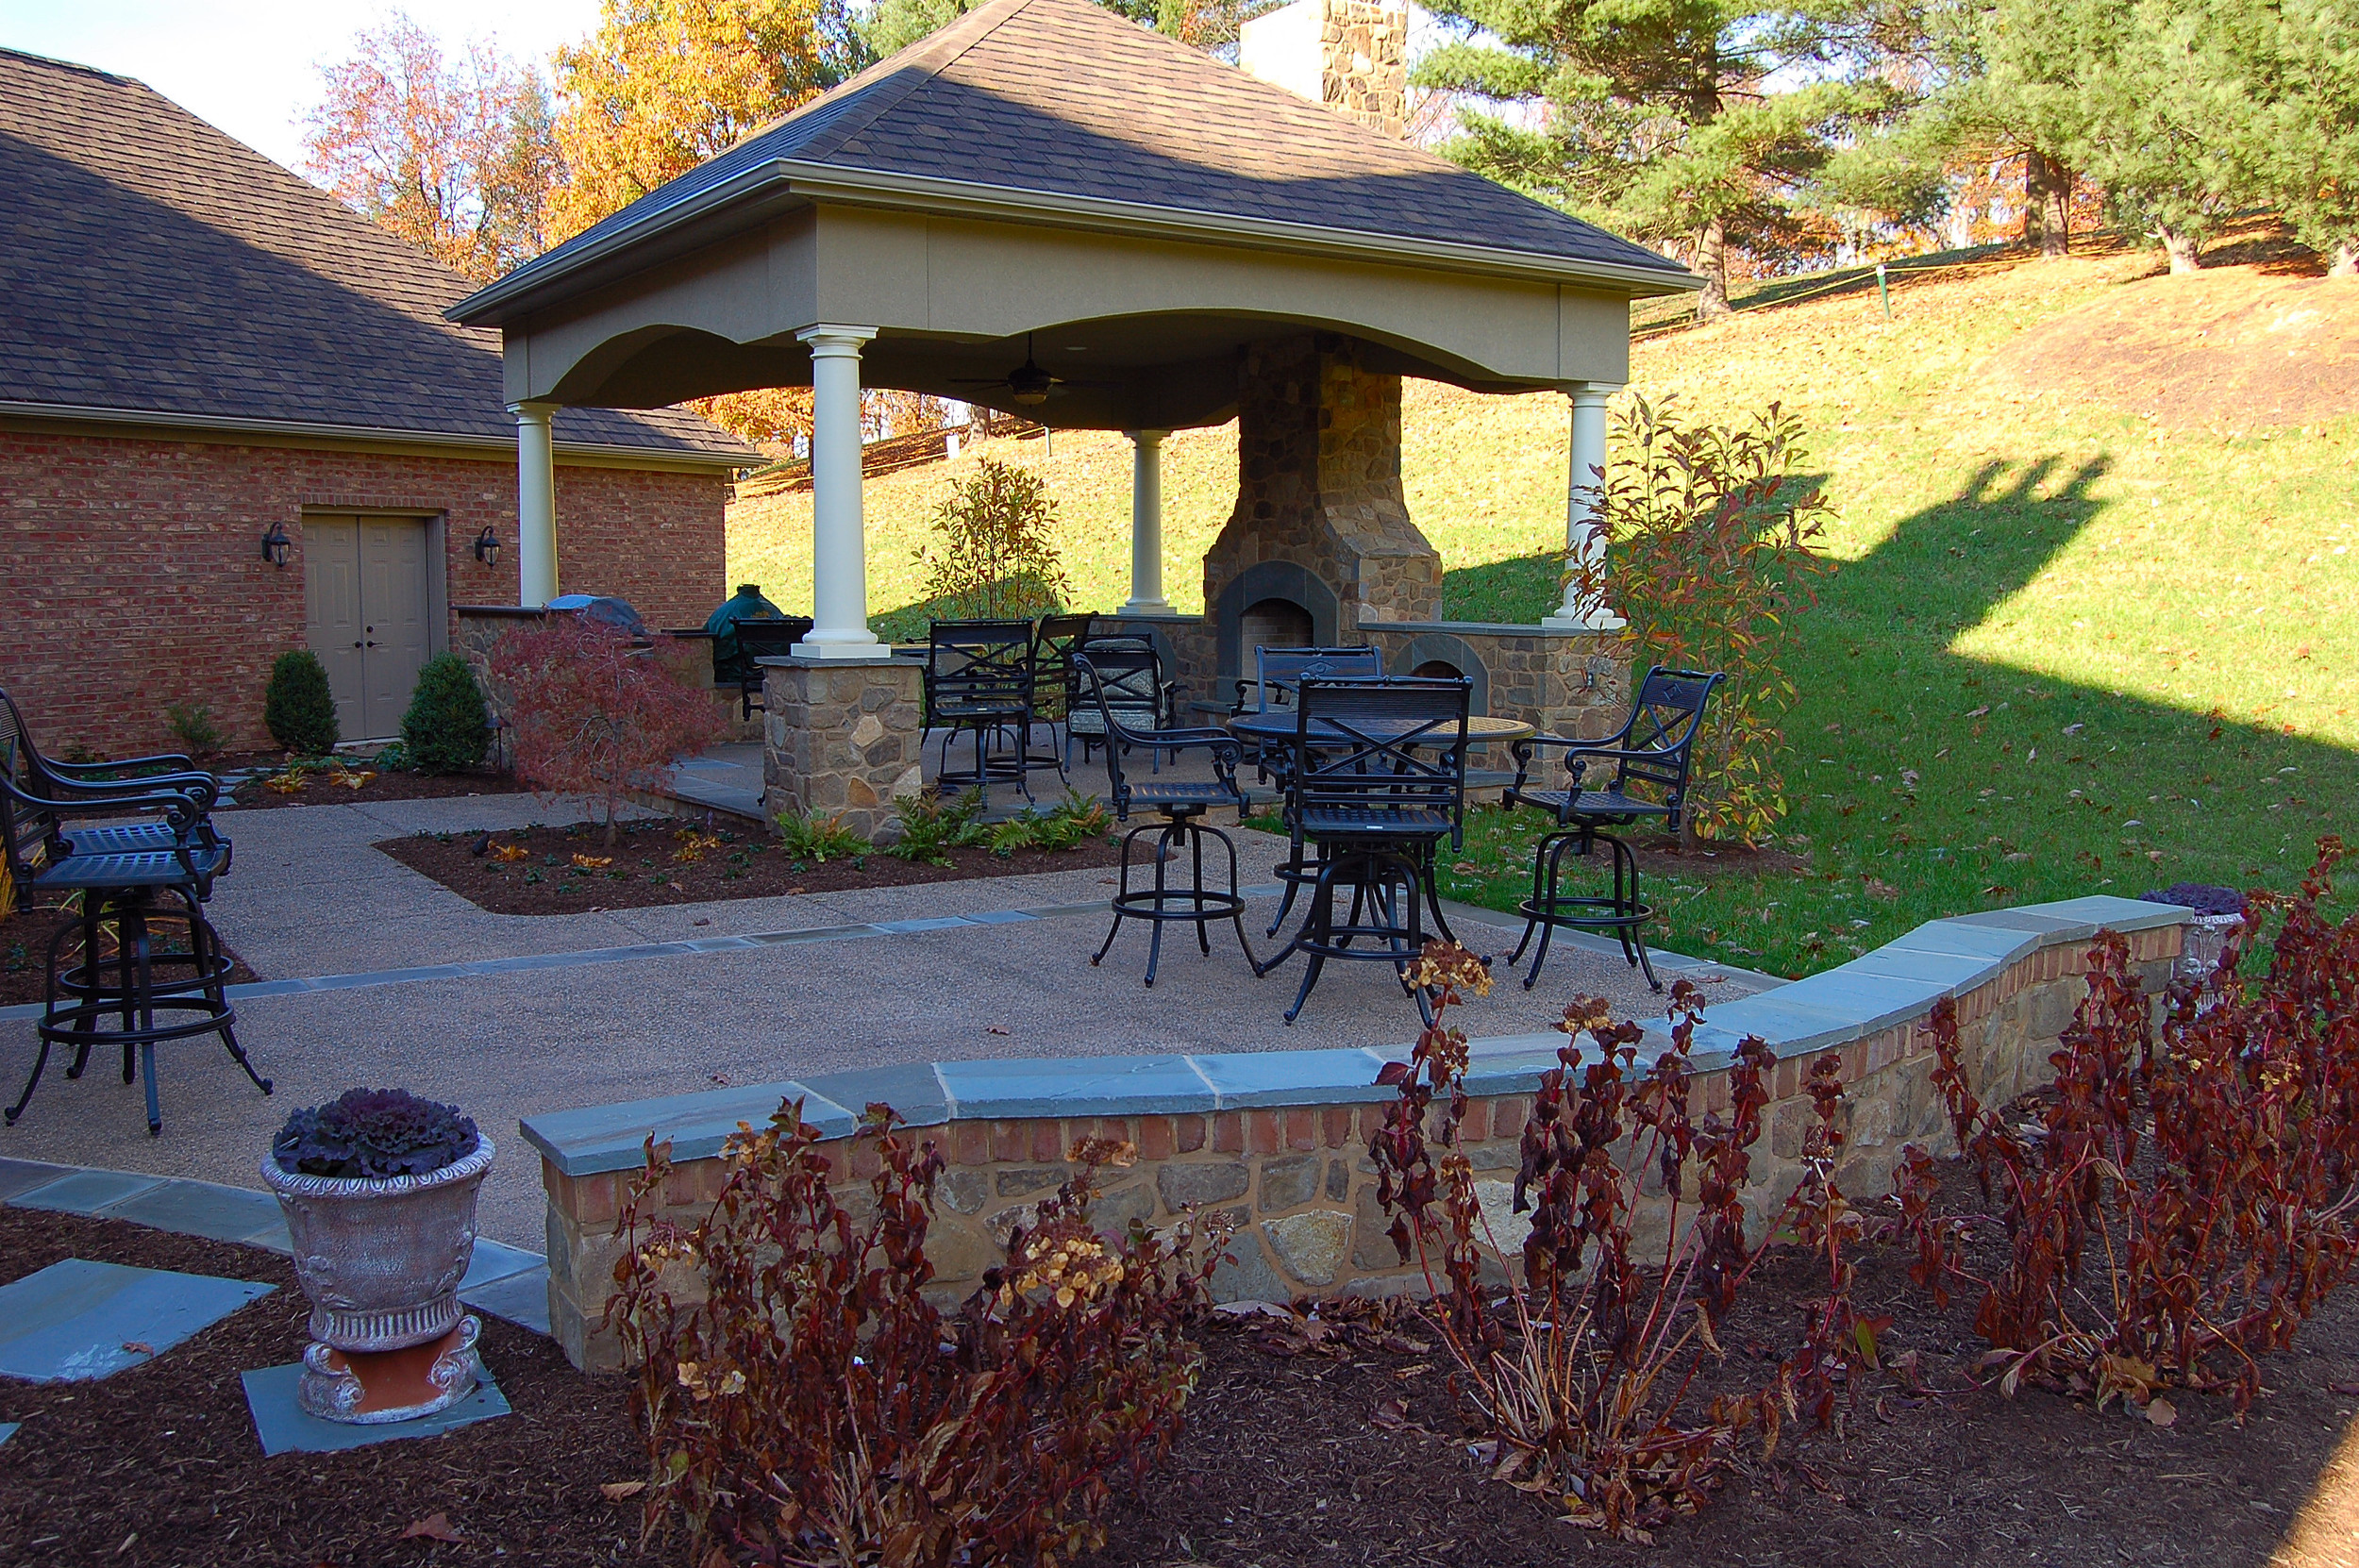 A stone knee wall encloses the patio